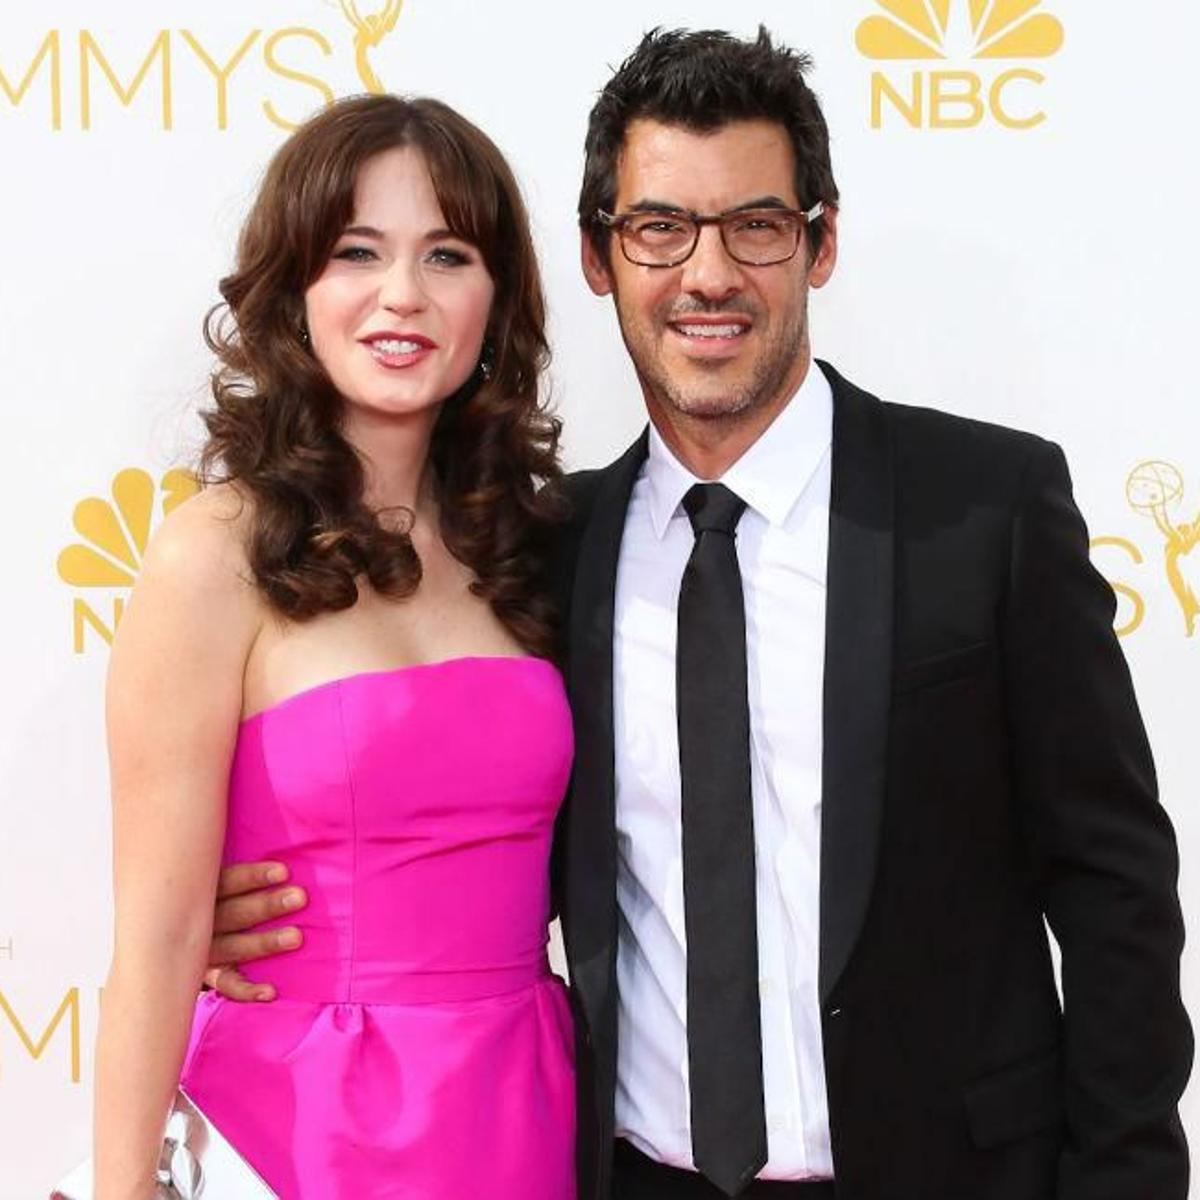 Zooey Deschanel Splits From Jacob Pechenik Celebrities Celebretainment Com